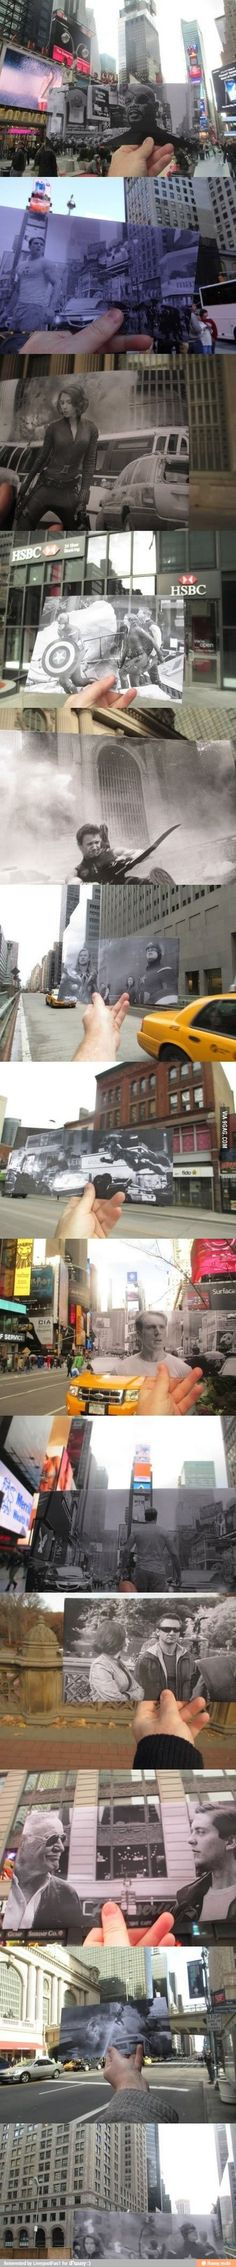 Overlapping pictures of where Avengers was shot in NY. This is phenomenal.